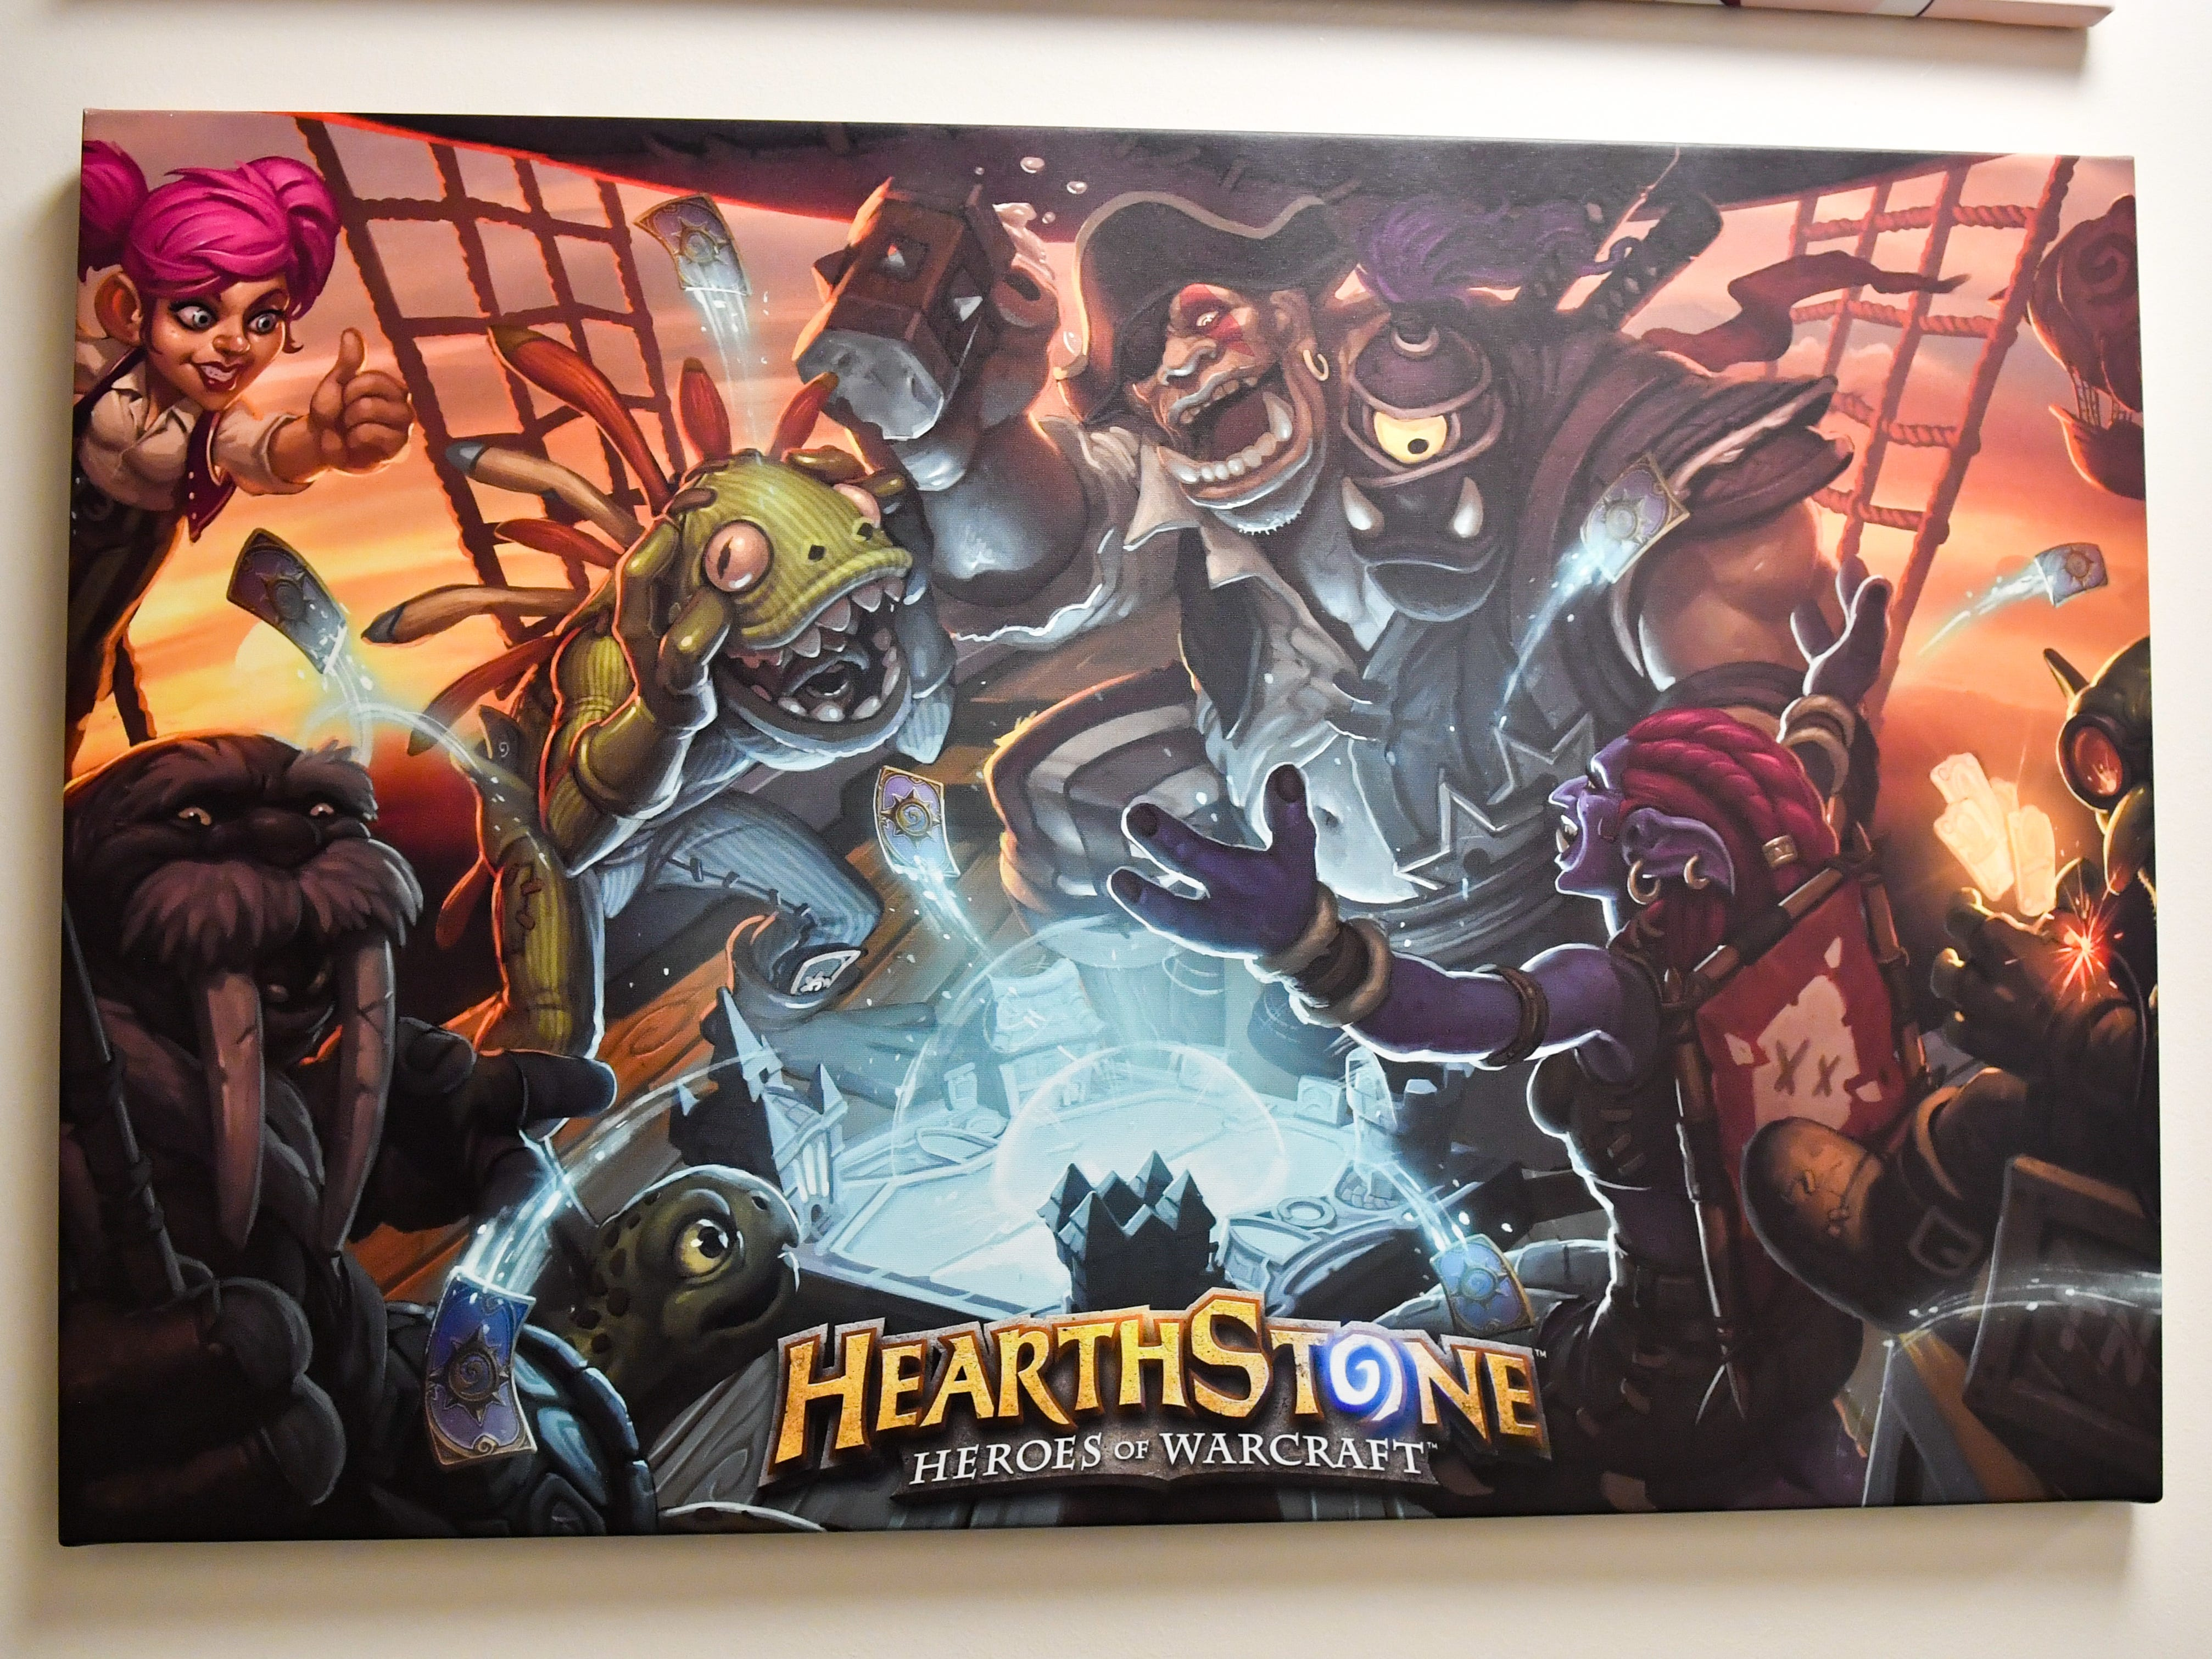 Hearthstone is a game that the LVC Esports team excels at. They practice everyday honing their skills.